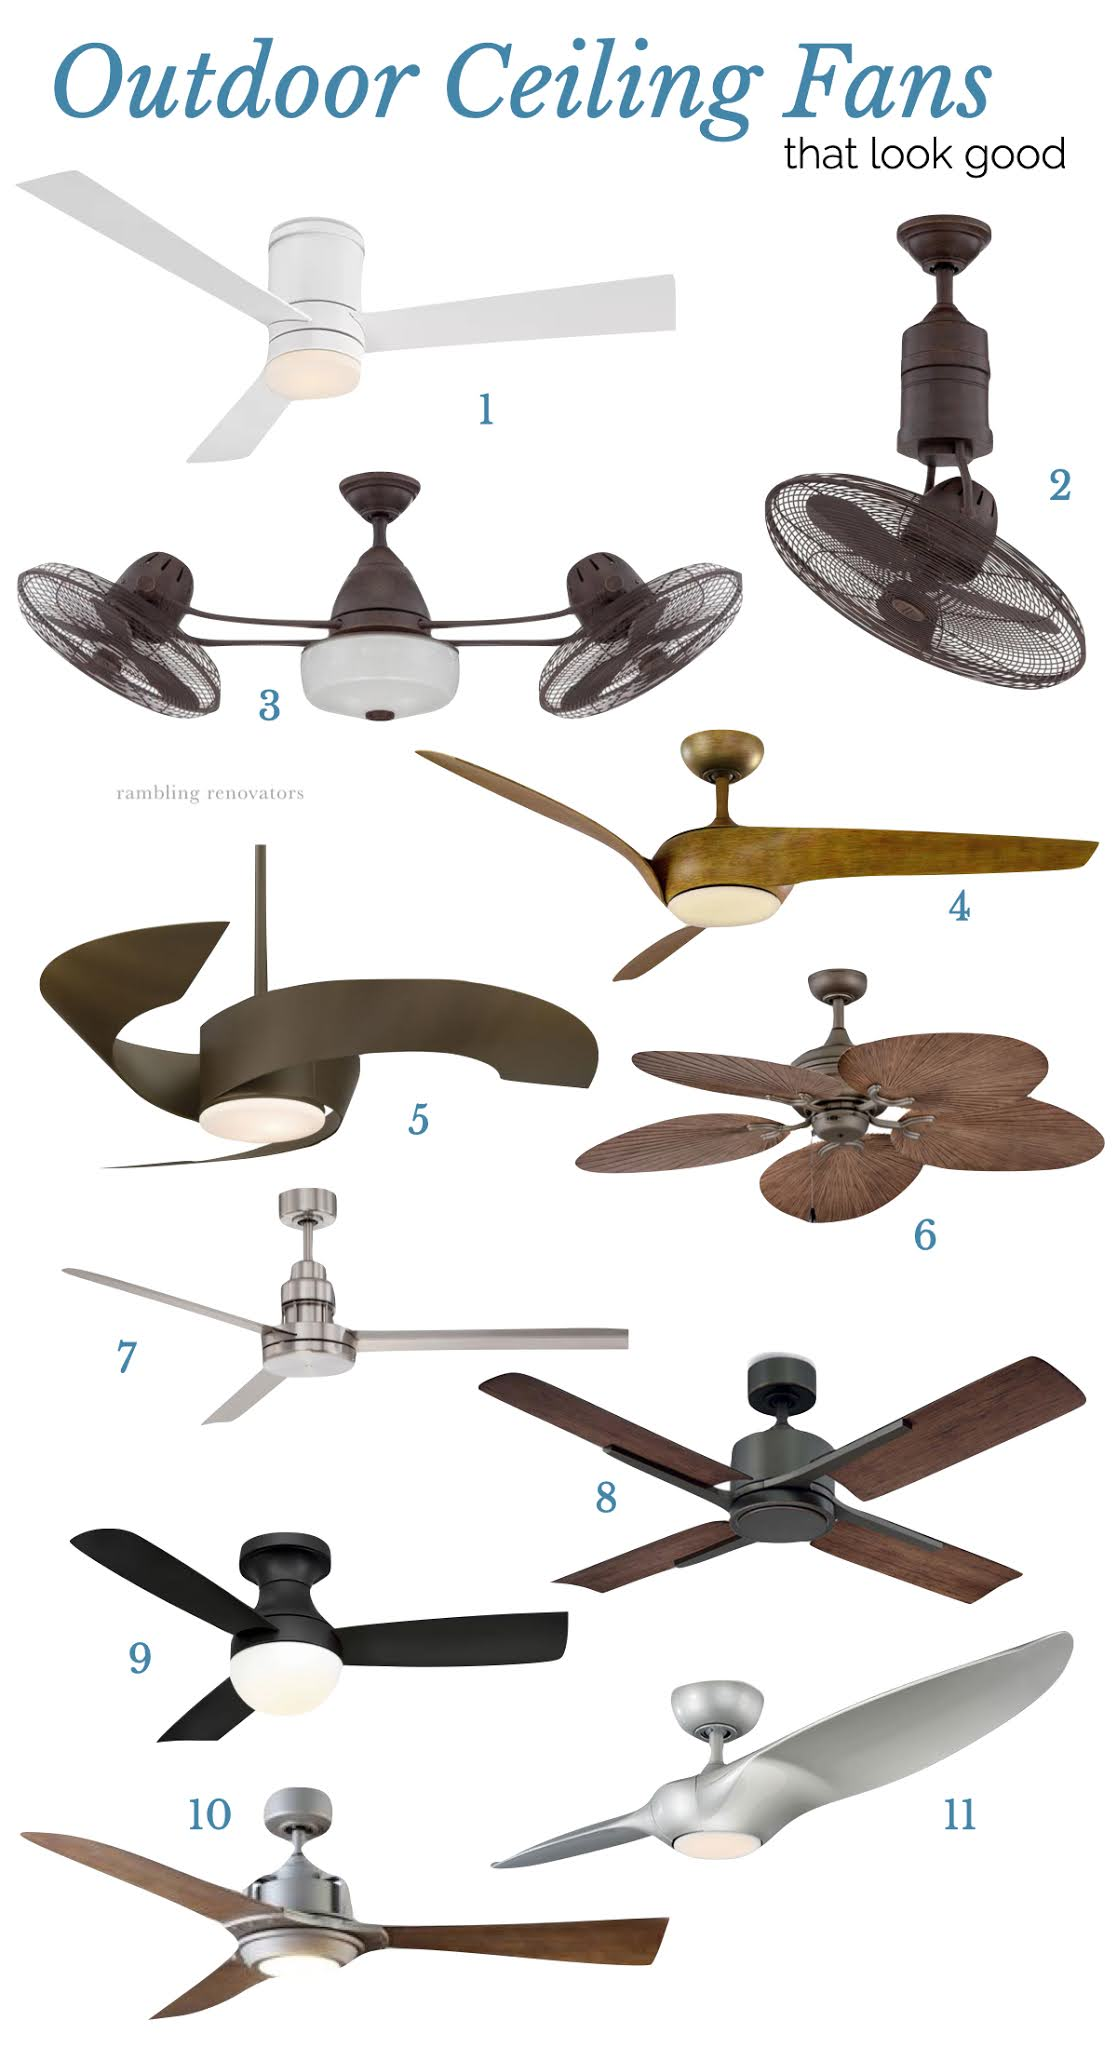 outdoor ceiling fans, outdoor fans with remote, outdoor ceiling fans with light